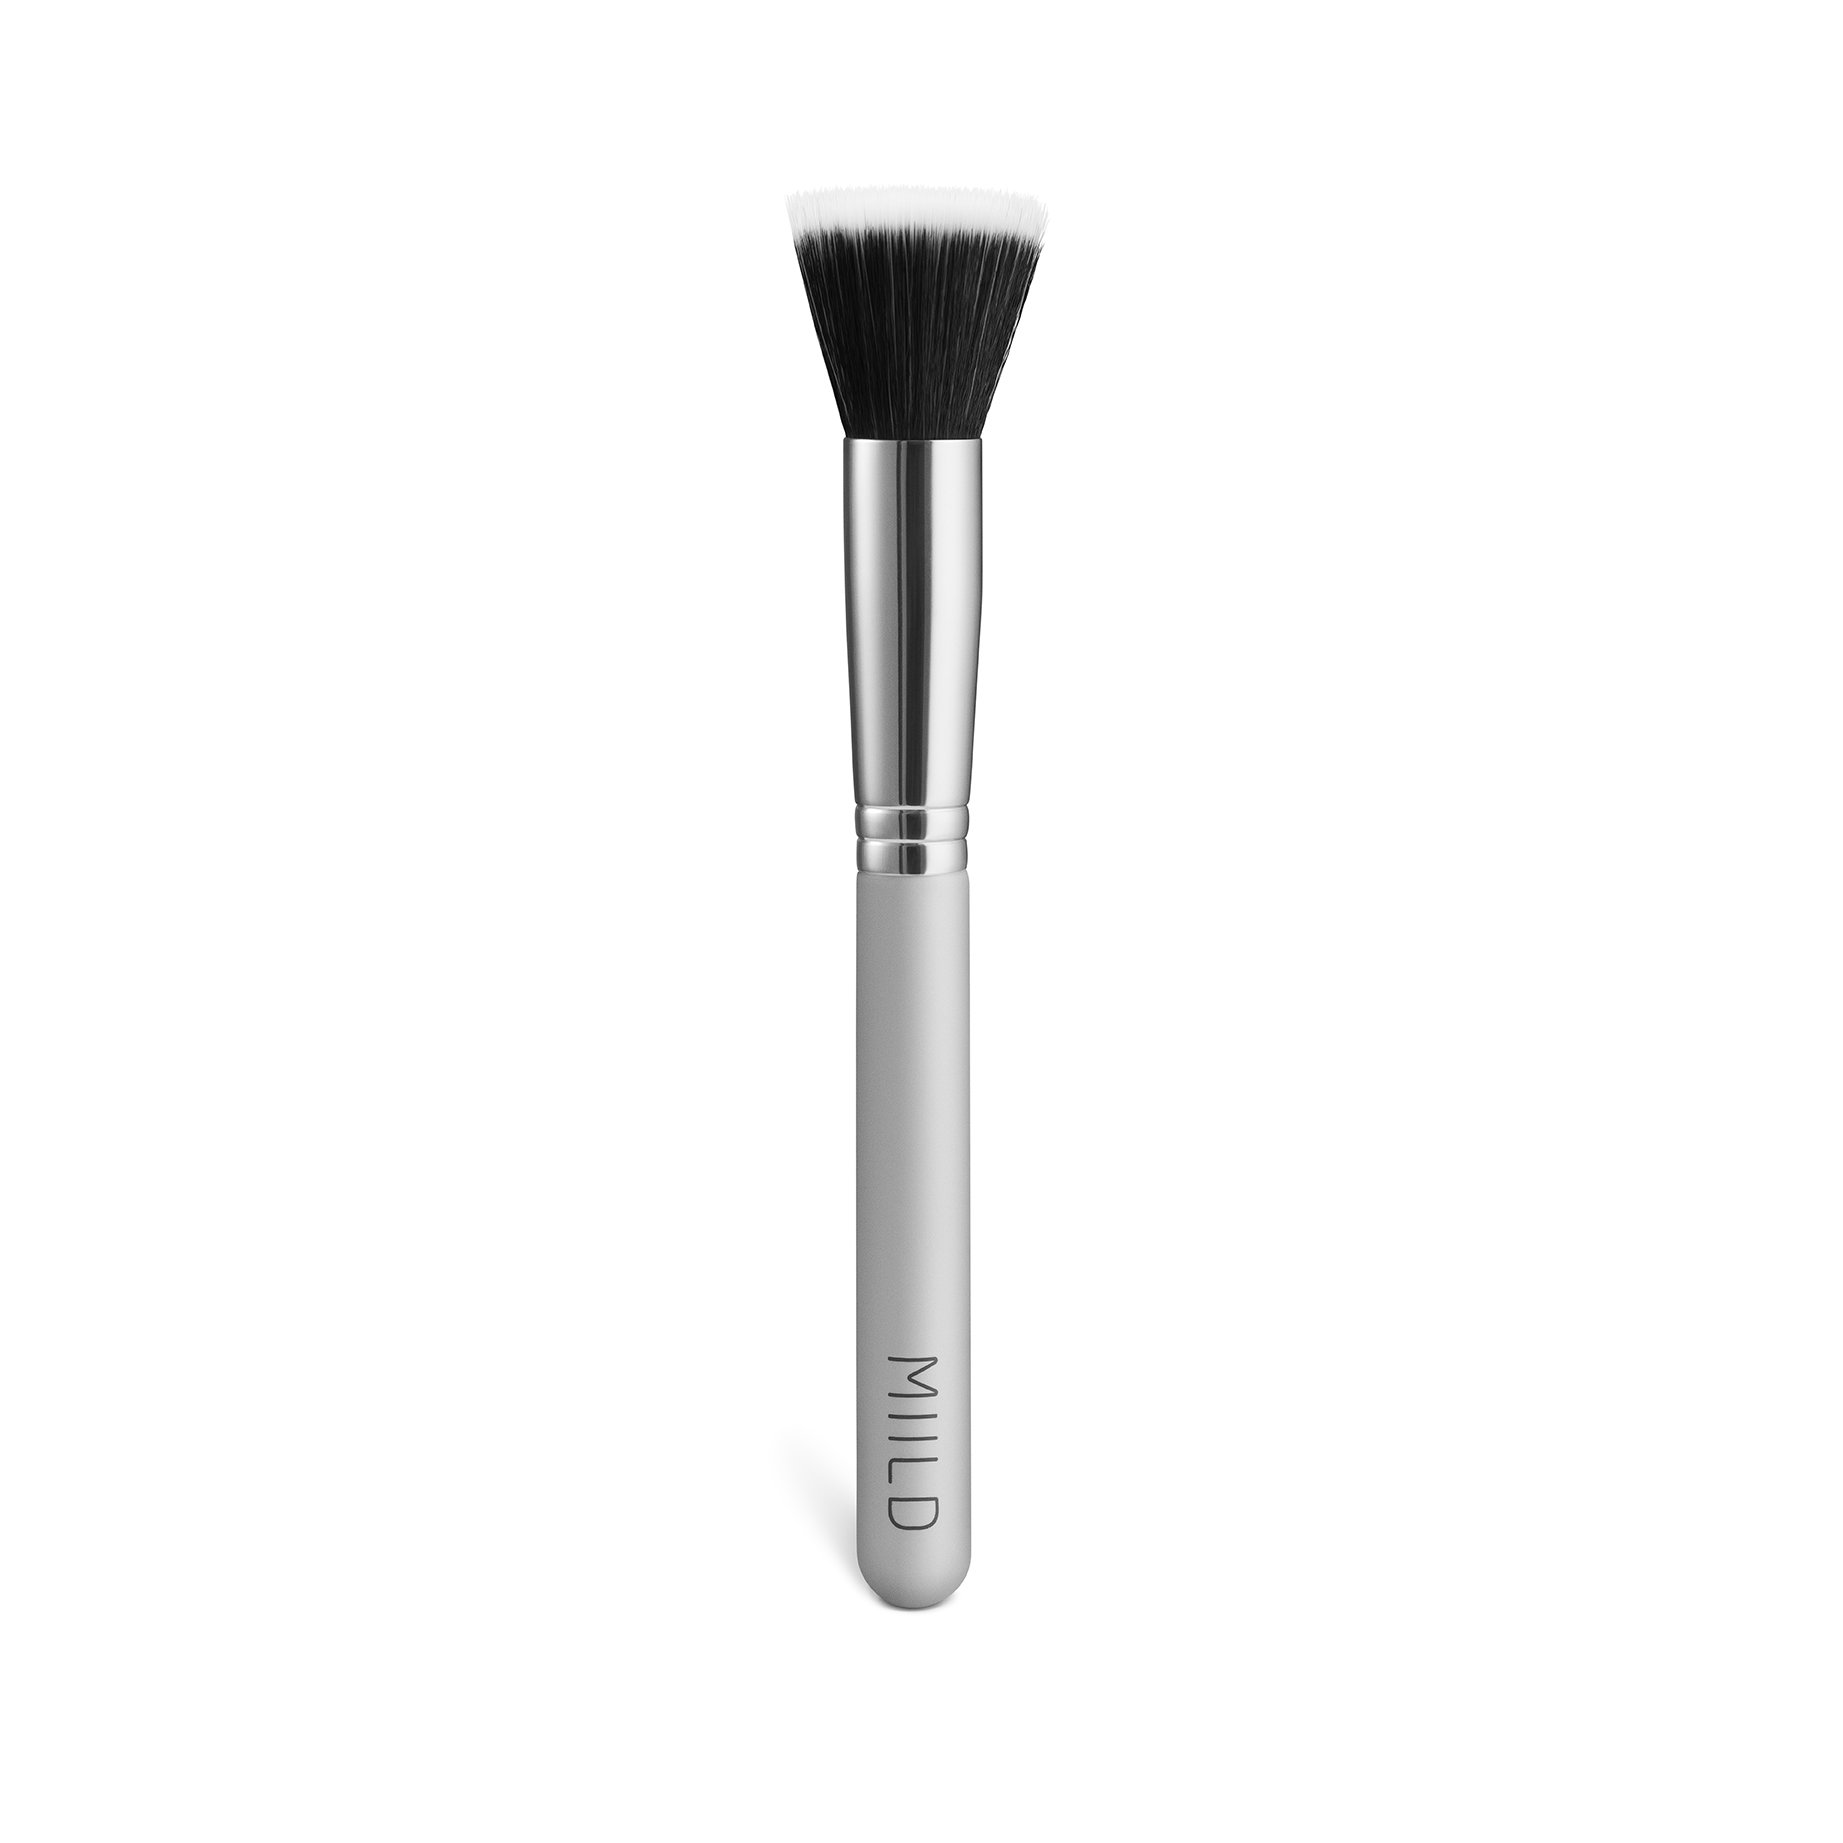 Miild Skin Blender Brush 07